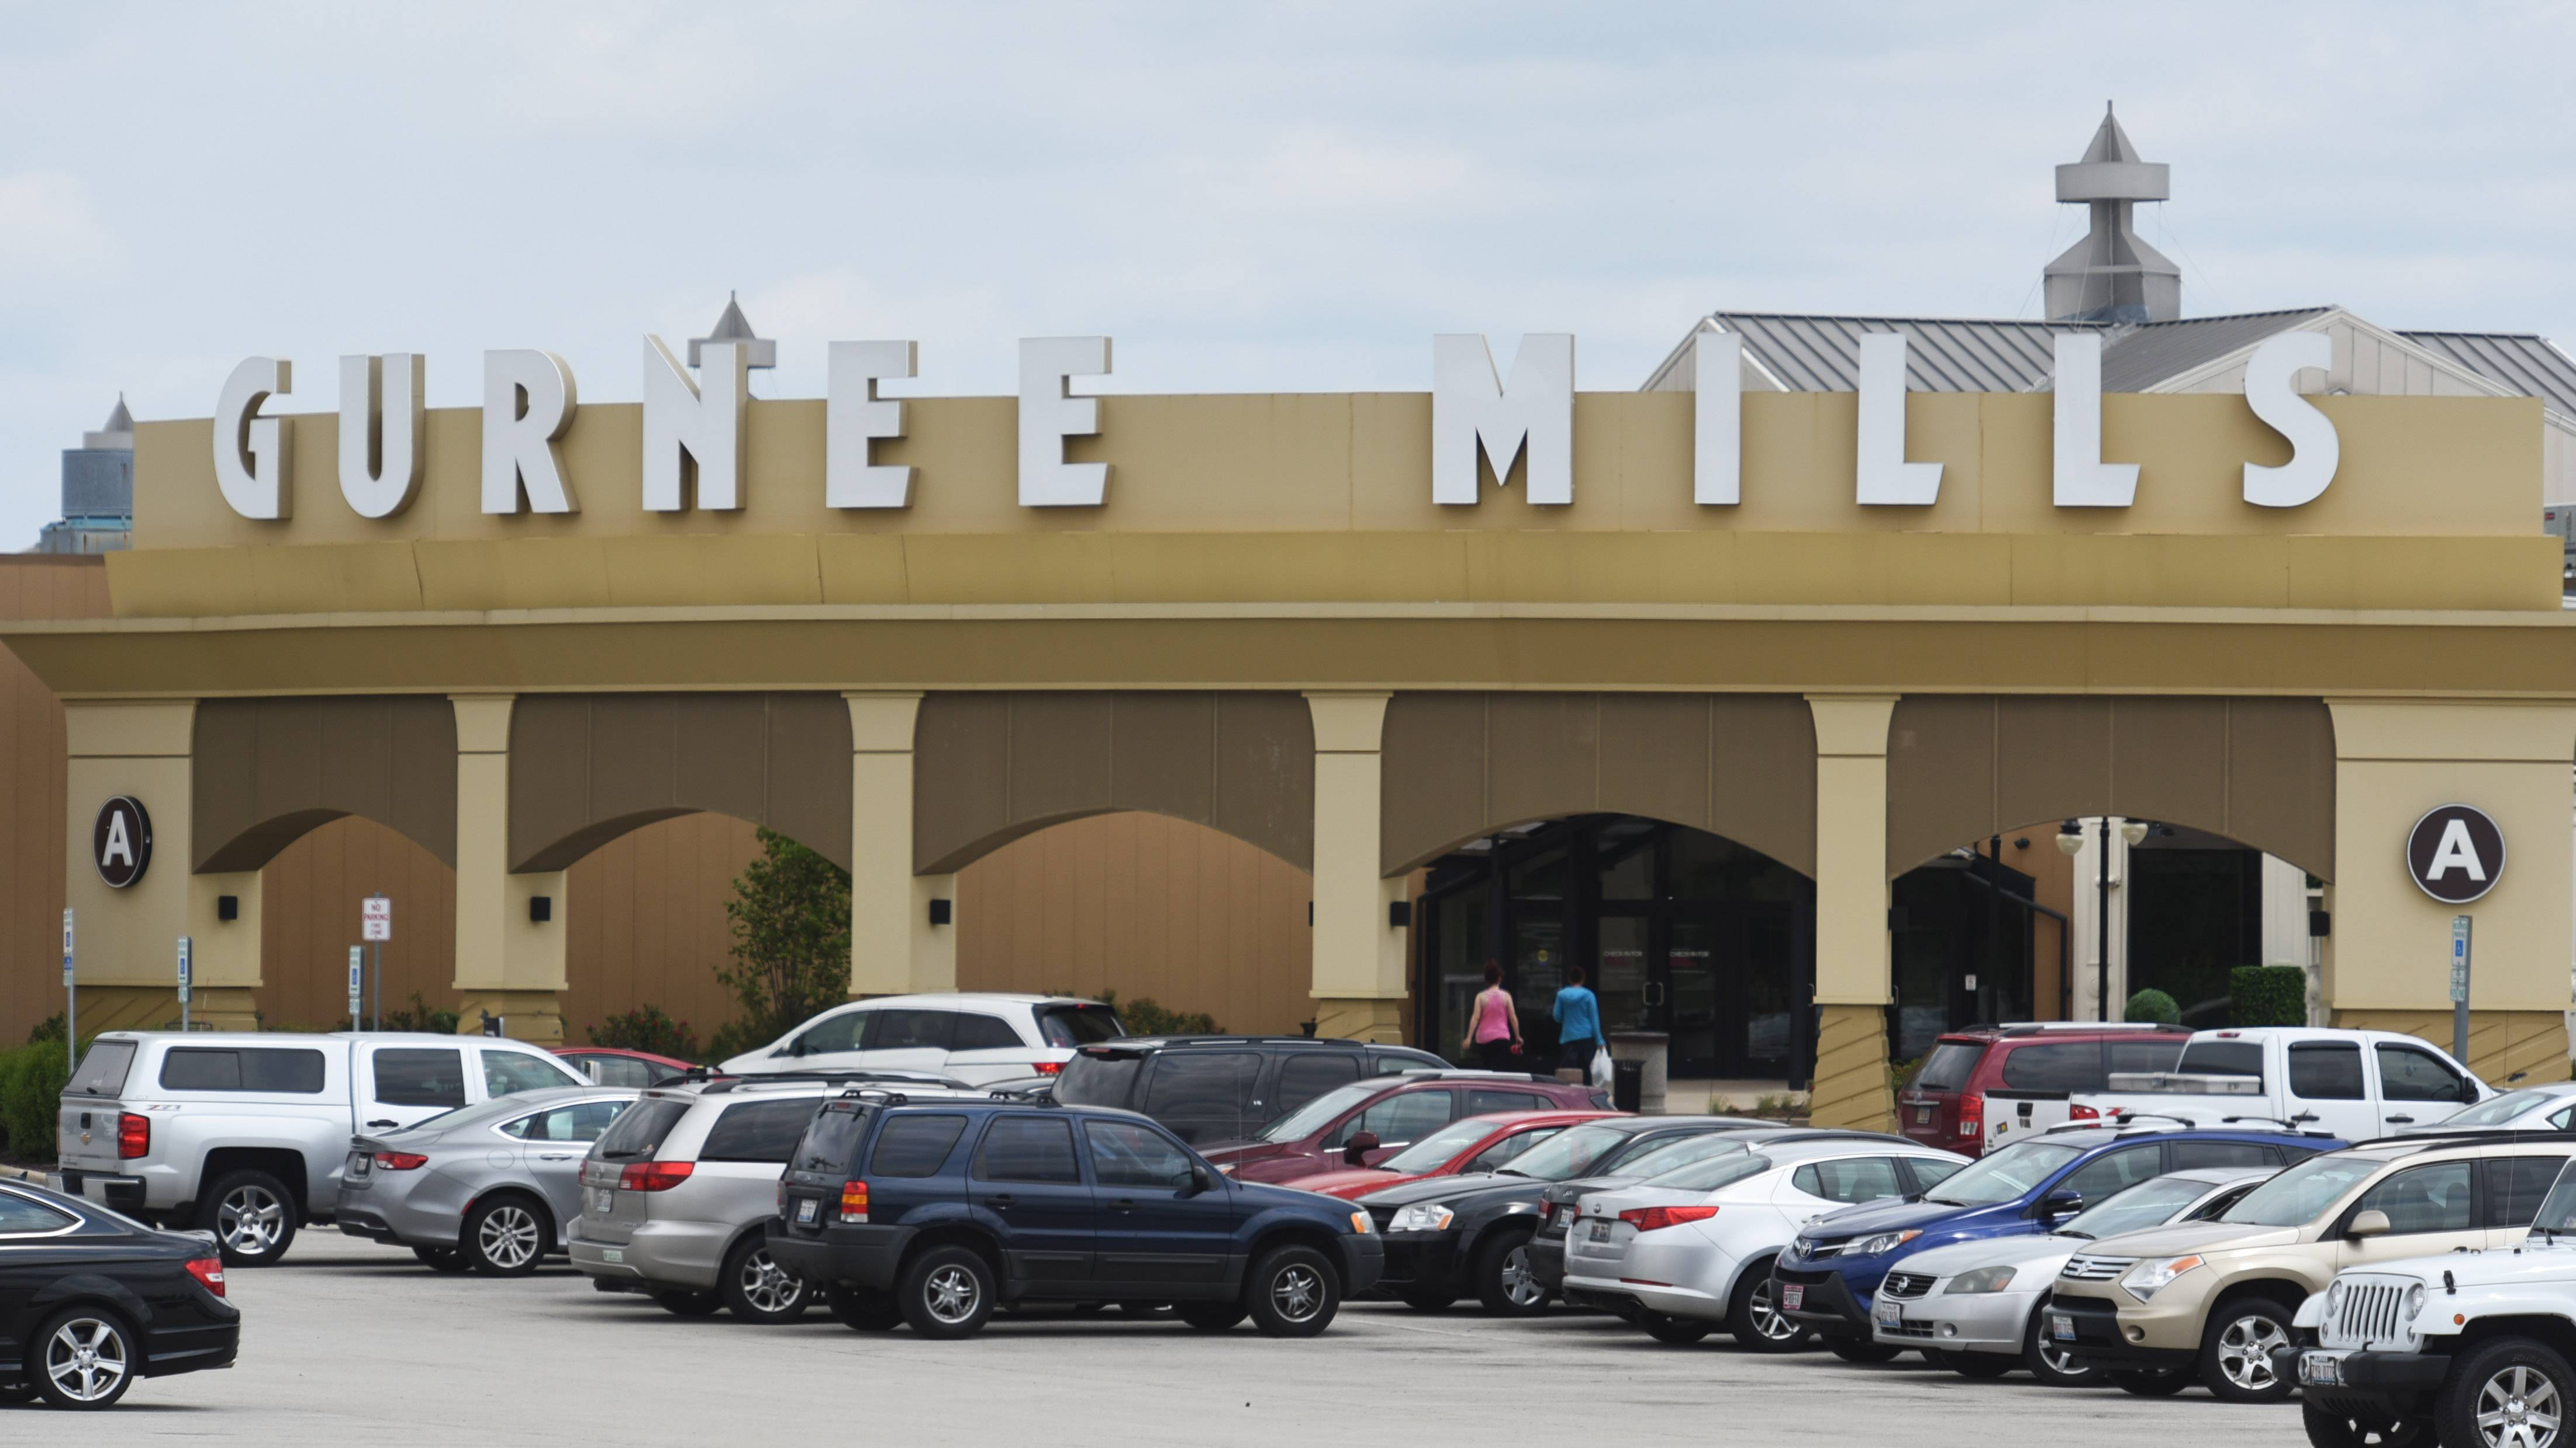 Gurnee Mills Announced Thursday That A New The RoomPlace Furniture Store  Will Open There This Summer